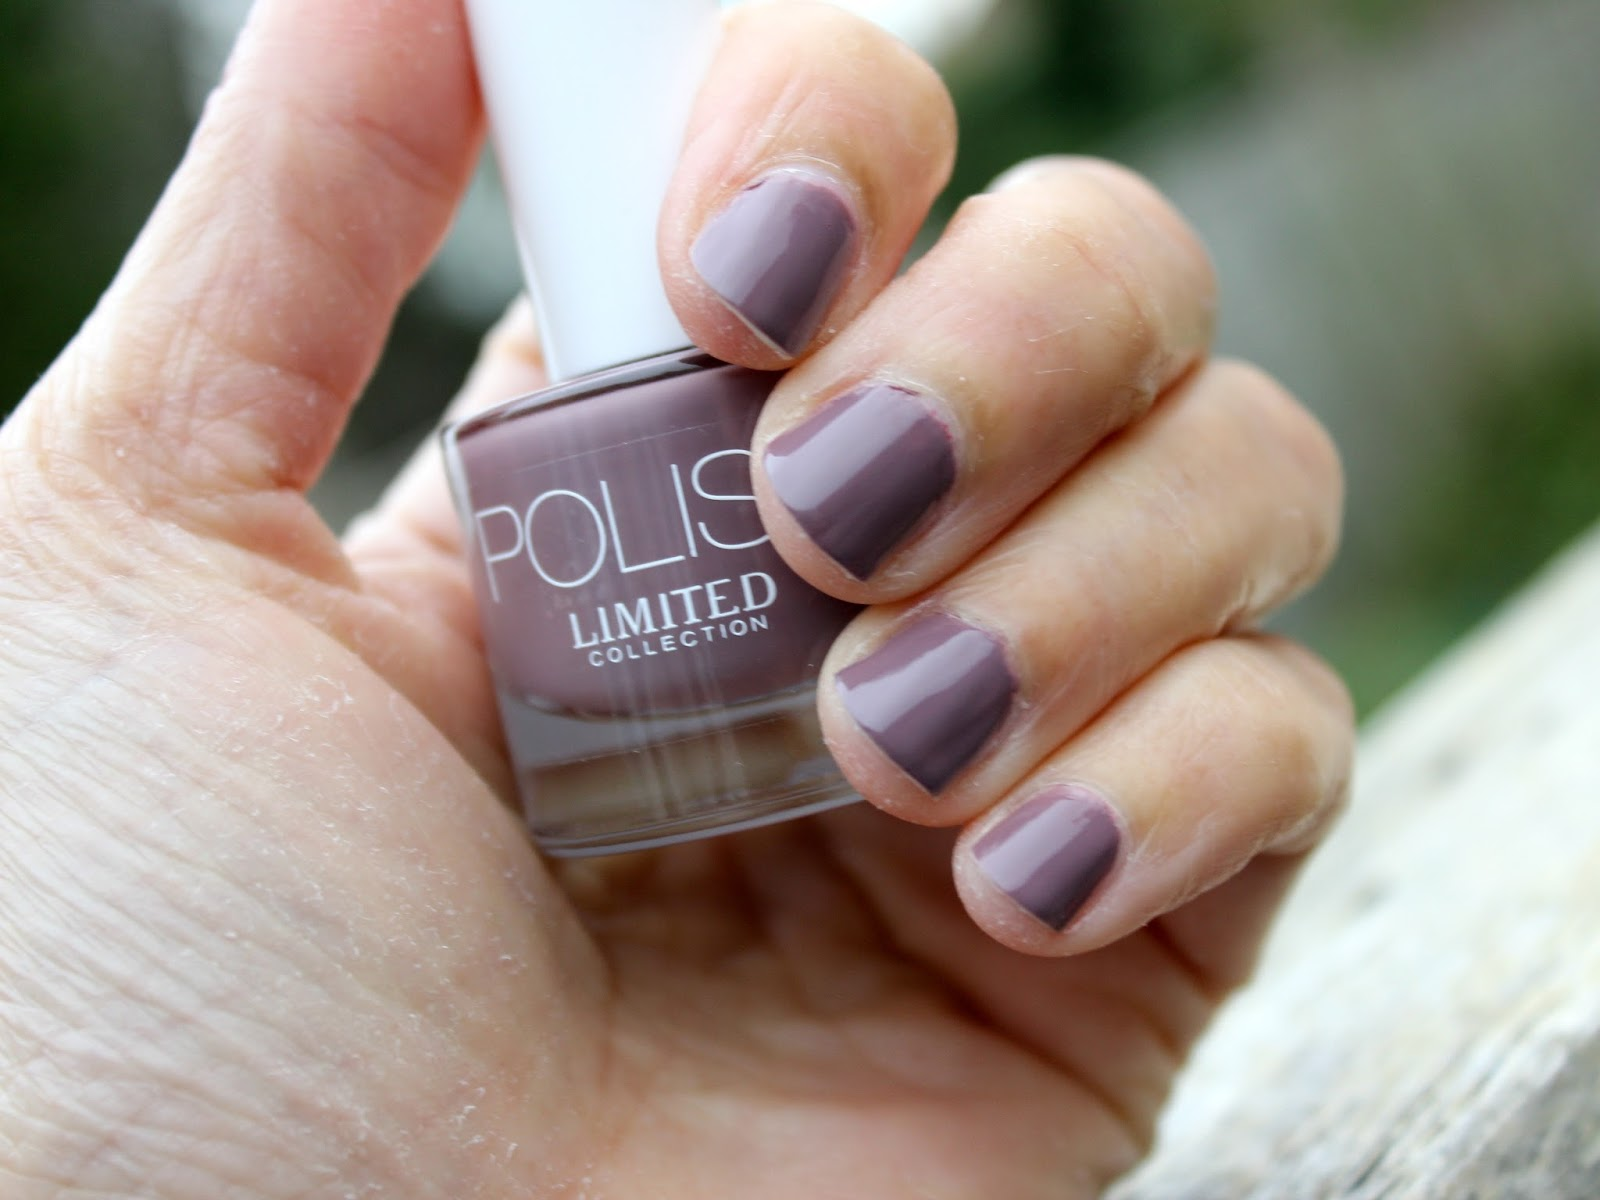 A picture of the Marks & Spencer Limited Collection Nail Polish in Putty